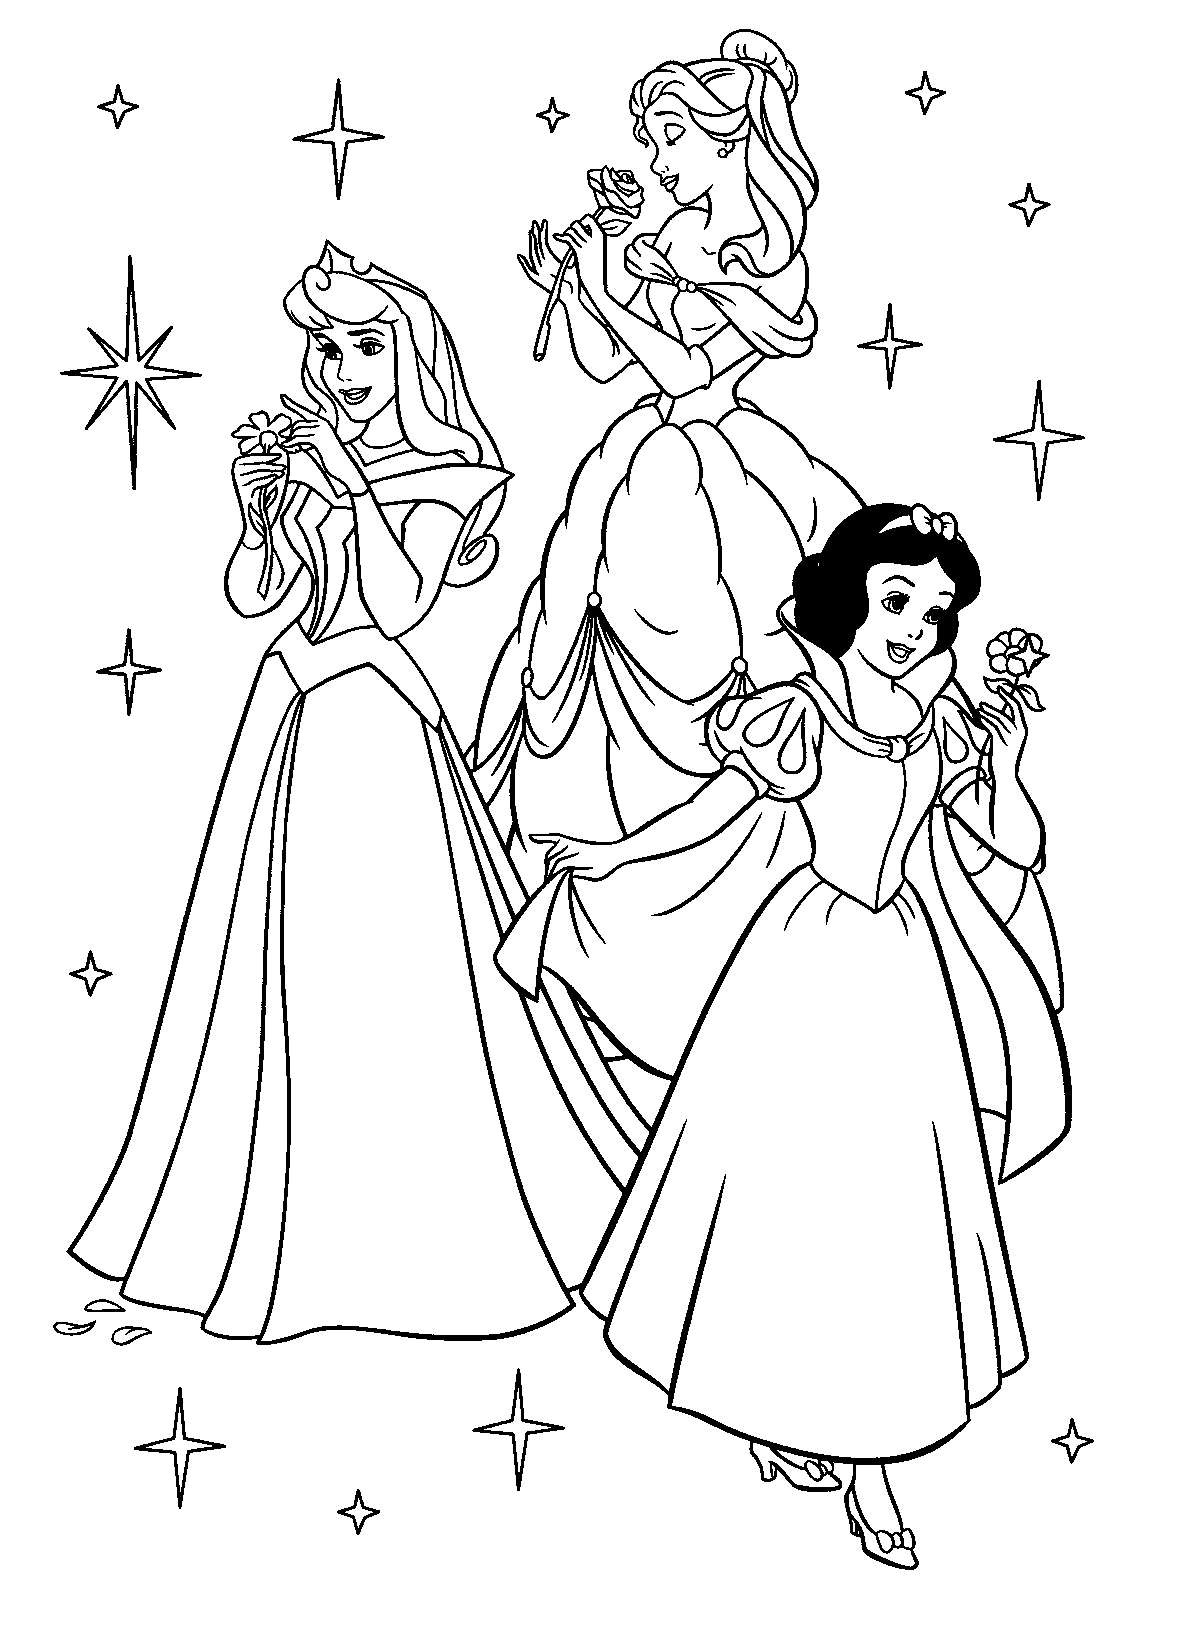 coloring sheets princesses - Timiz.conceptzmusic.co